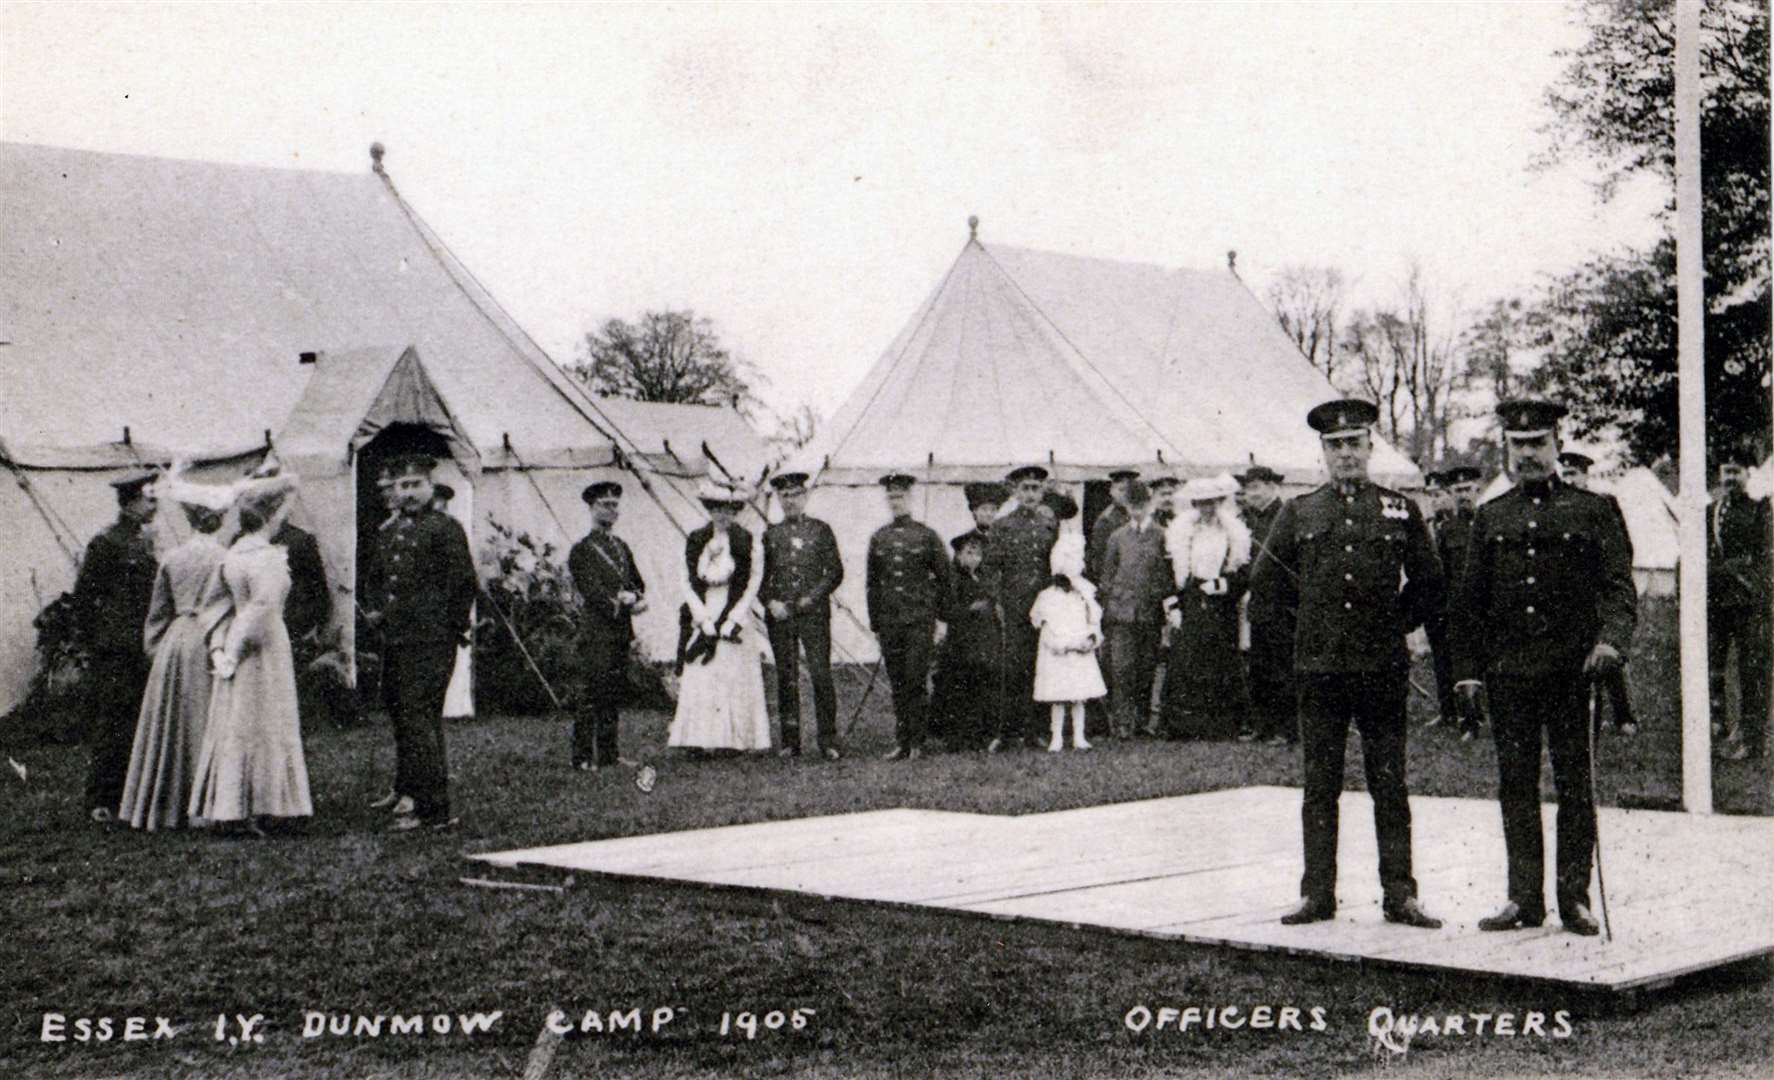 Prize-giving day at the Essex Yeomanry camp, 1905 (13343934)